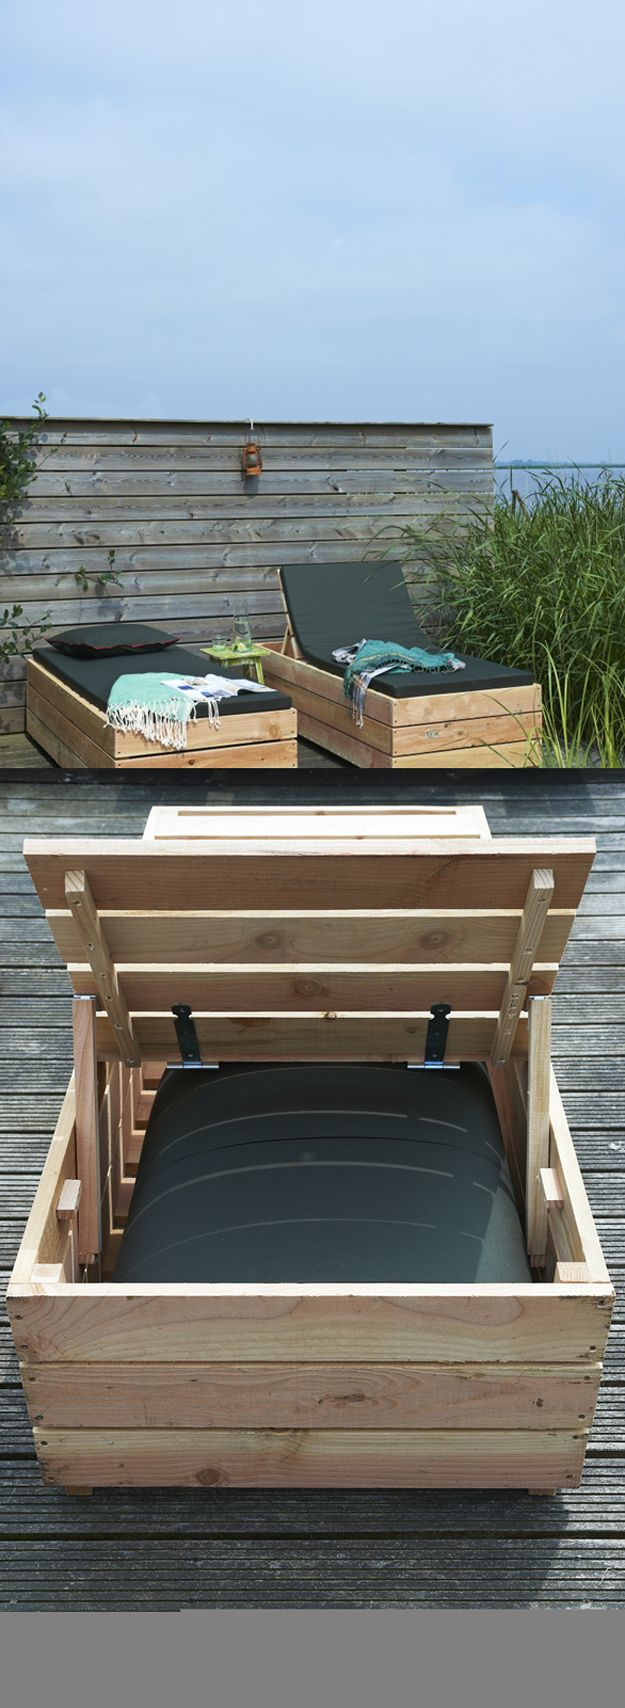 Homemade outdoor furniture ideas - Outdoor Pallet Projects For Diy Furniture